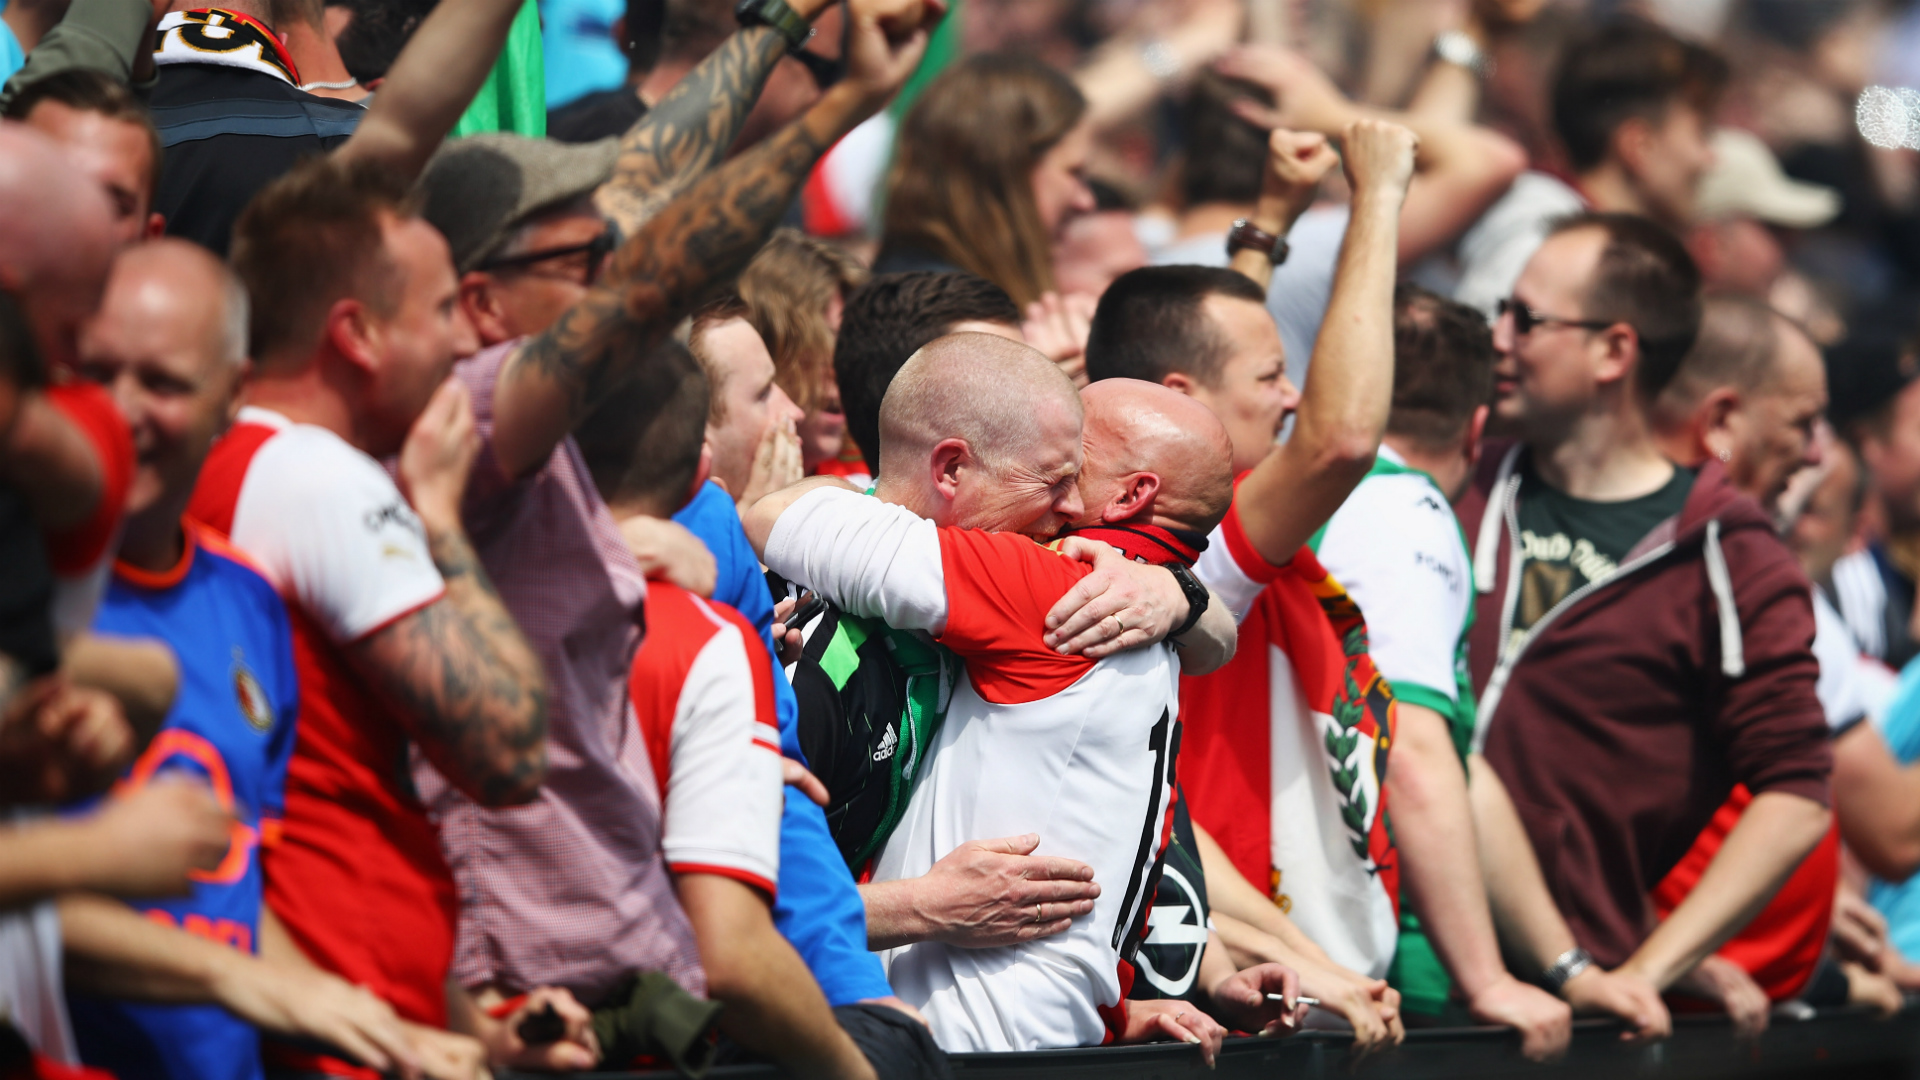 Dirk Kuyt scored a hat-trick as Feyenoord won the Eredivisie title